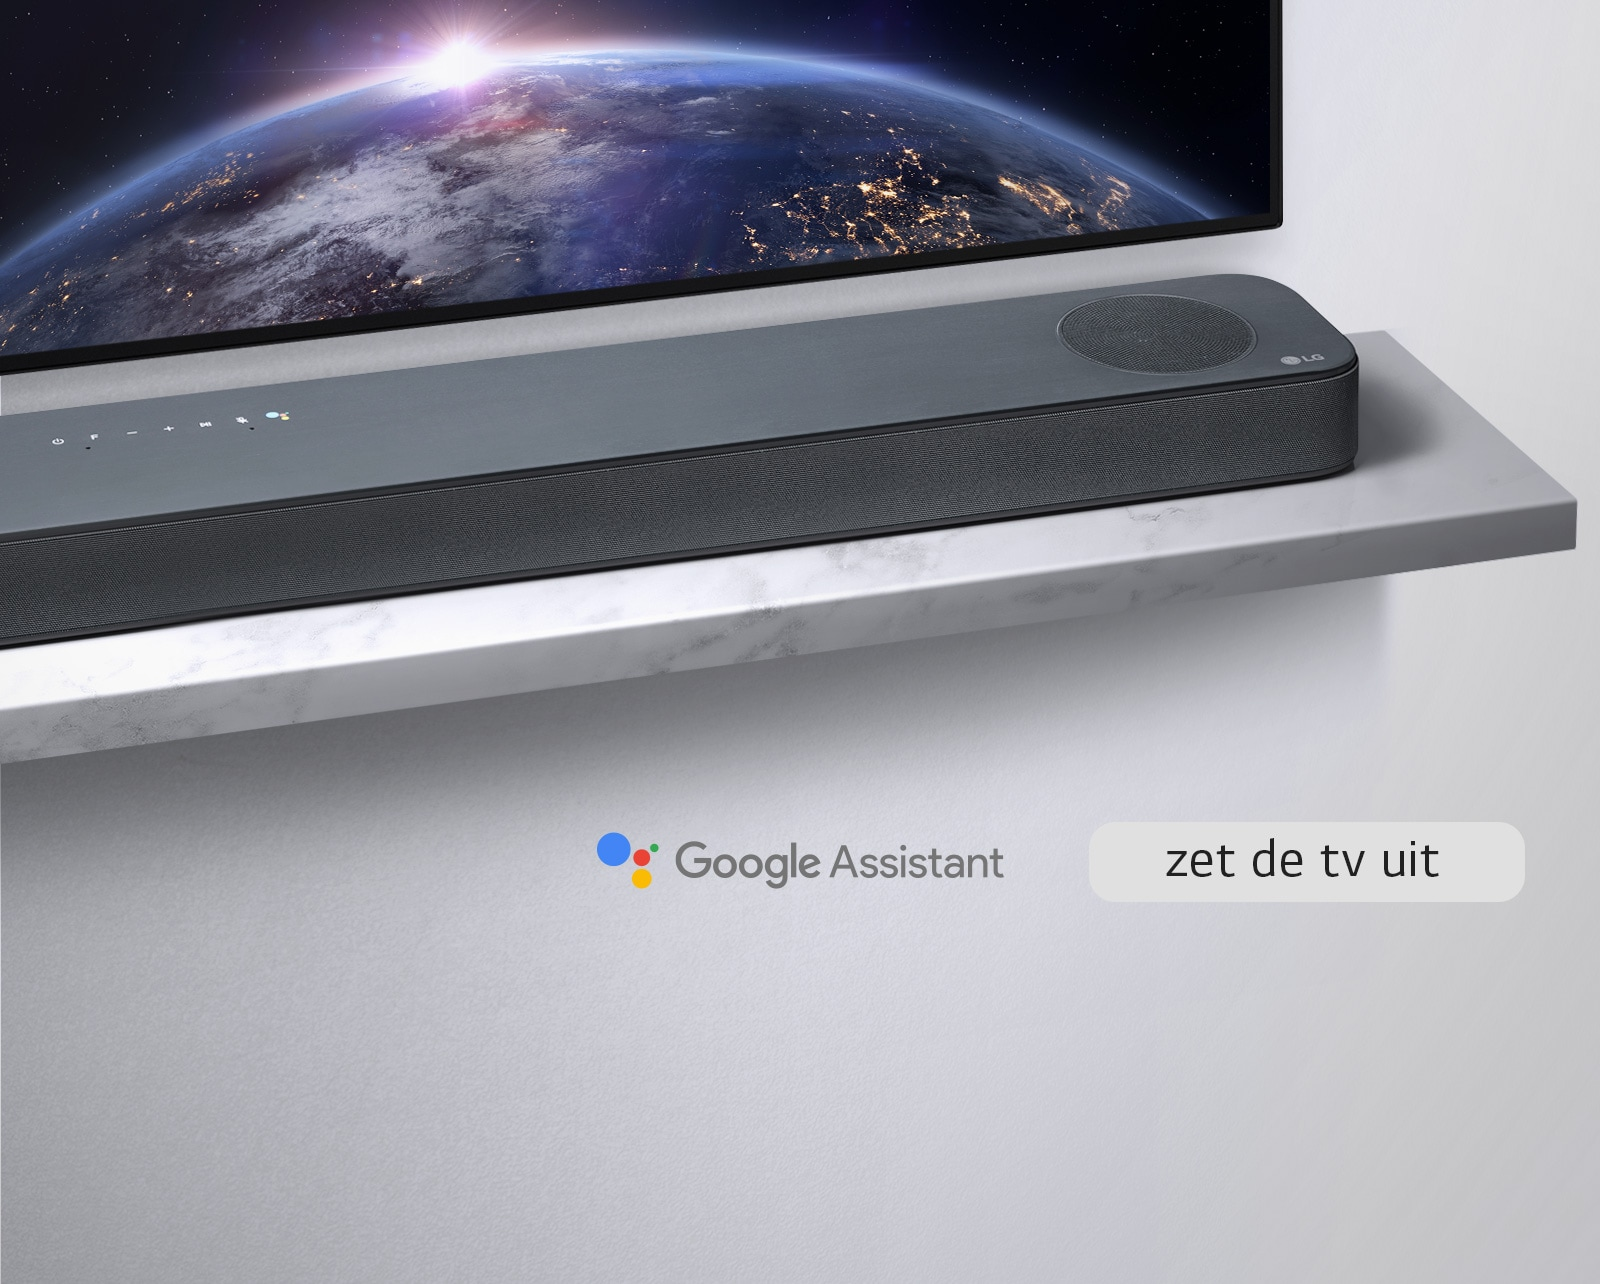 LG Soundbar met de Google Assistent built-in1